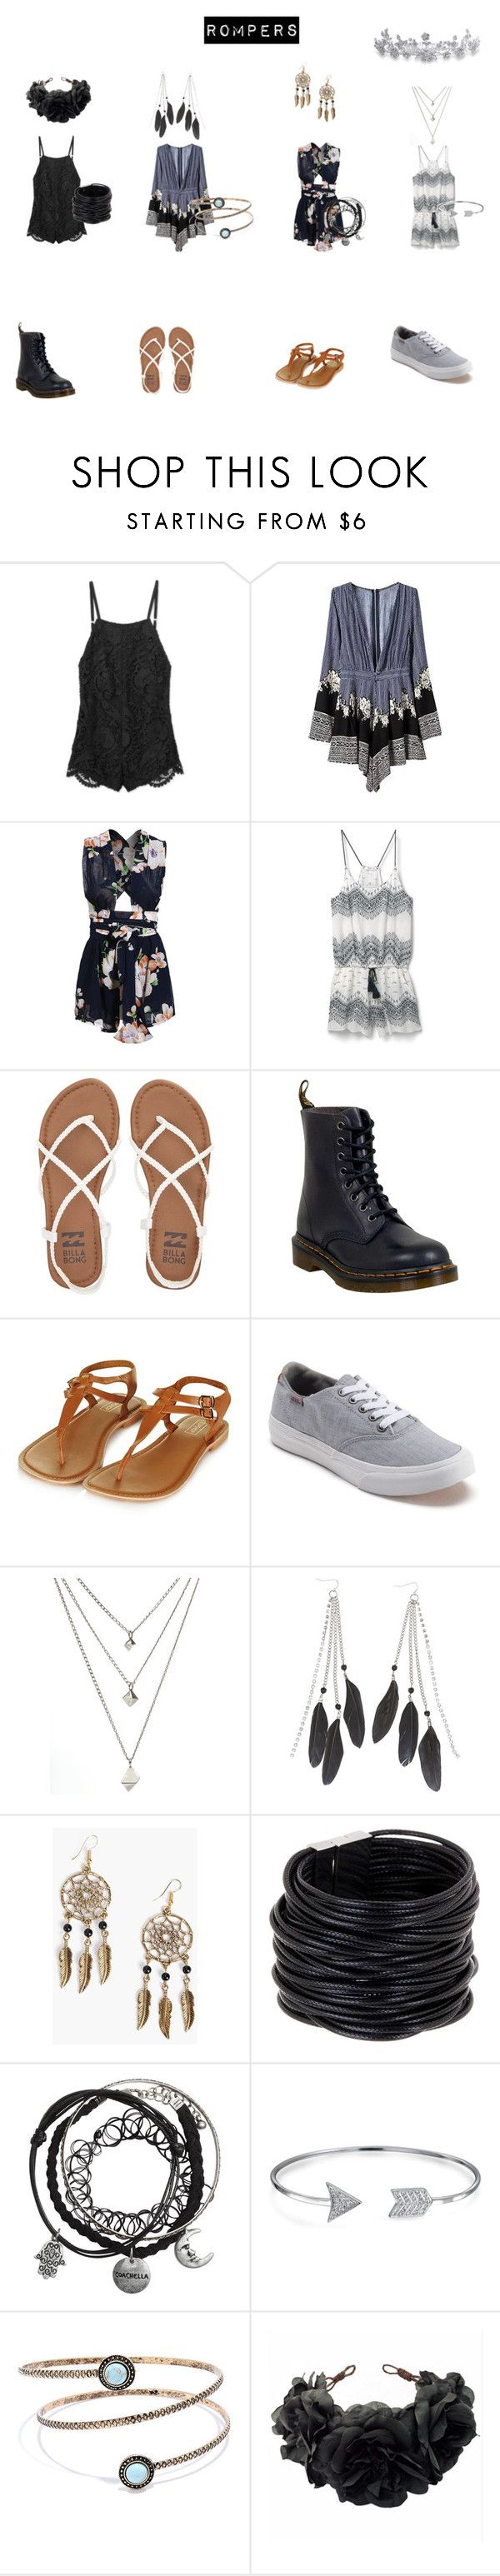 """""""Romper"""" by amberpurdybvb34 on Polyvore featuring Stone_Cold_Fox, MANGO, Billabong, Dr. Martens, Topshop, Vans, Charlotte Russe, Boohoo, Saachi and Bling Jewelry"""